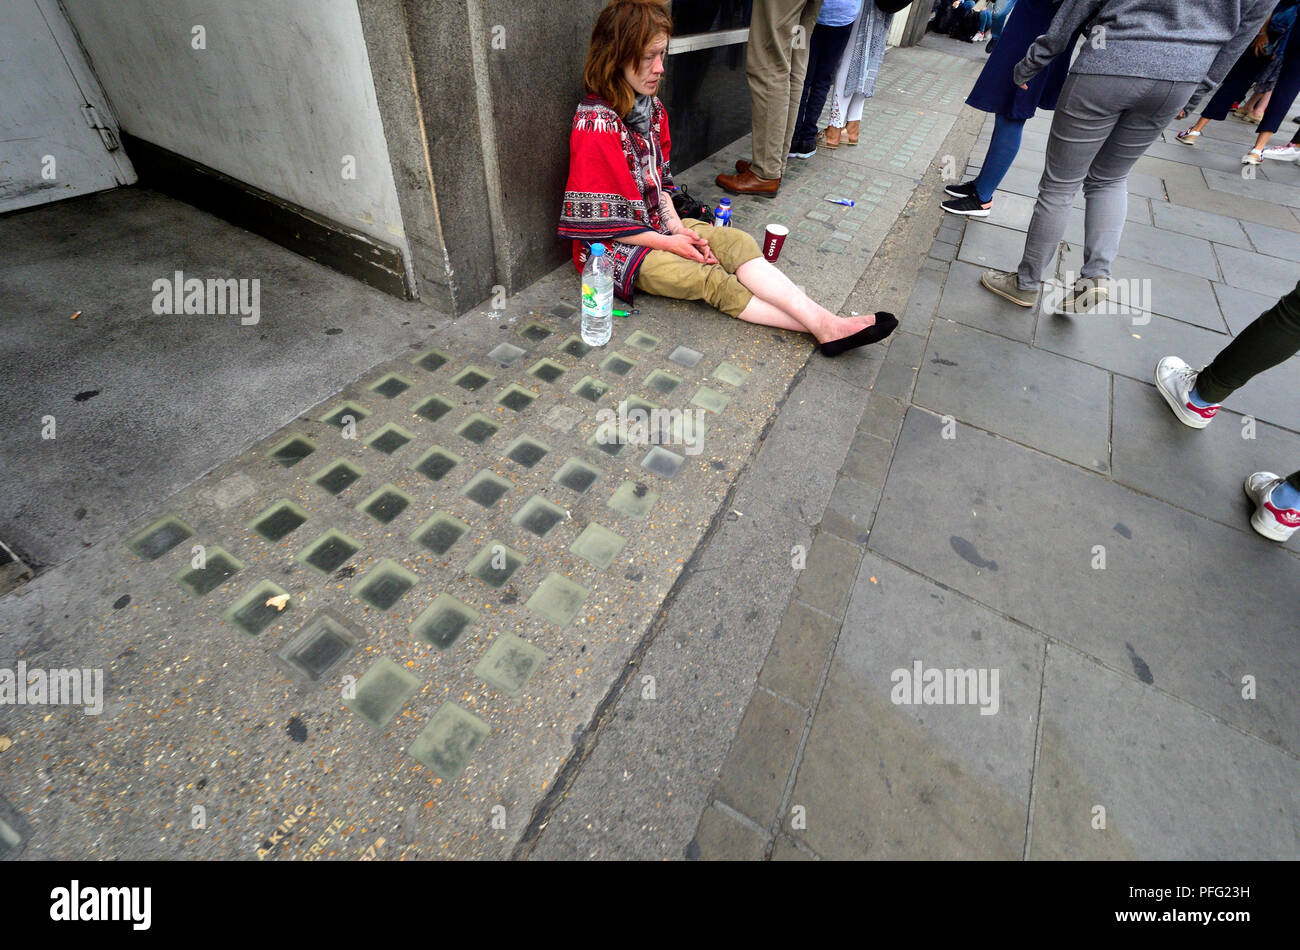 Homeless woman on the pavement in the Strand, London, England, UK. - Stock Image